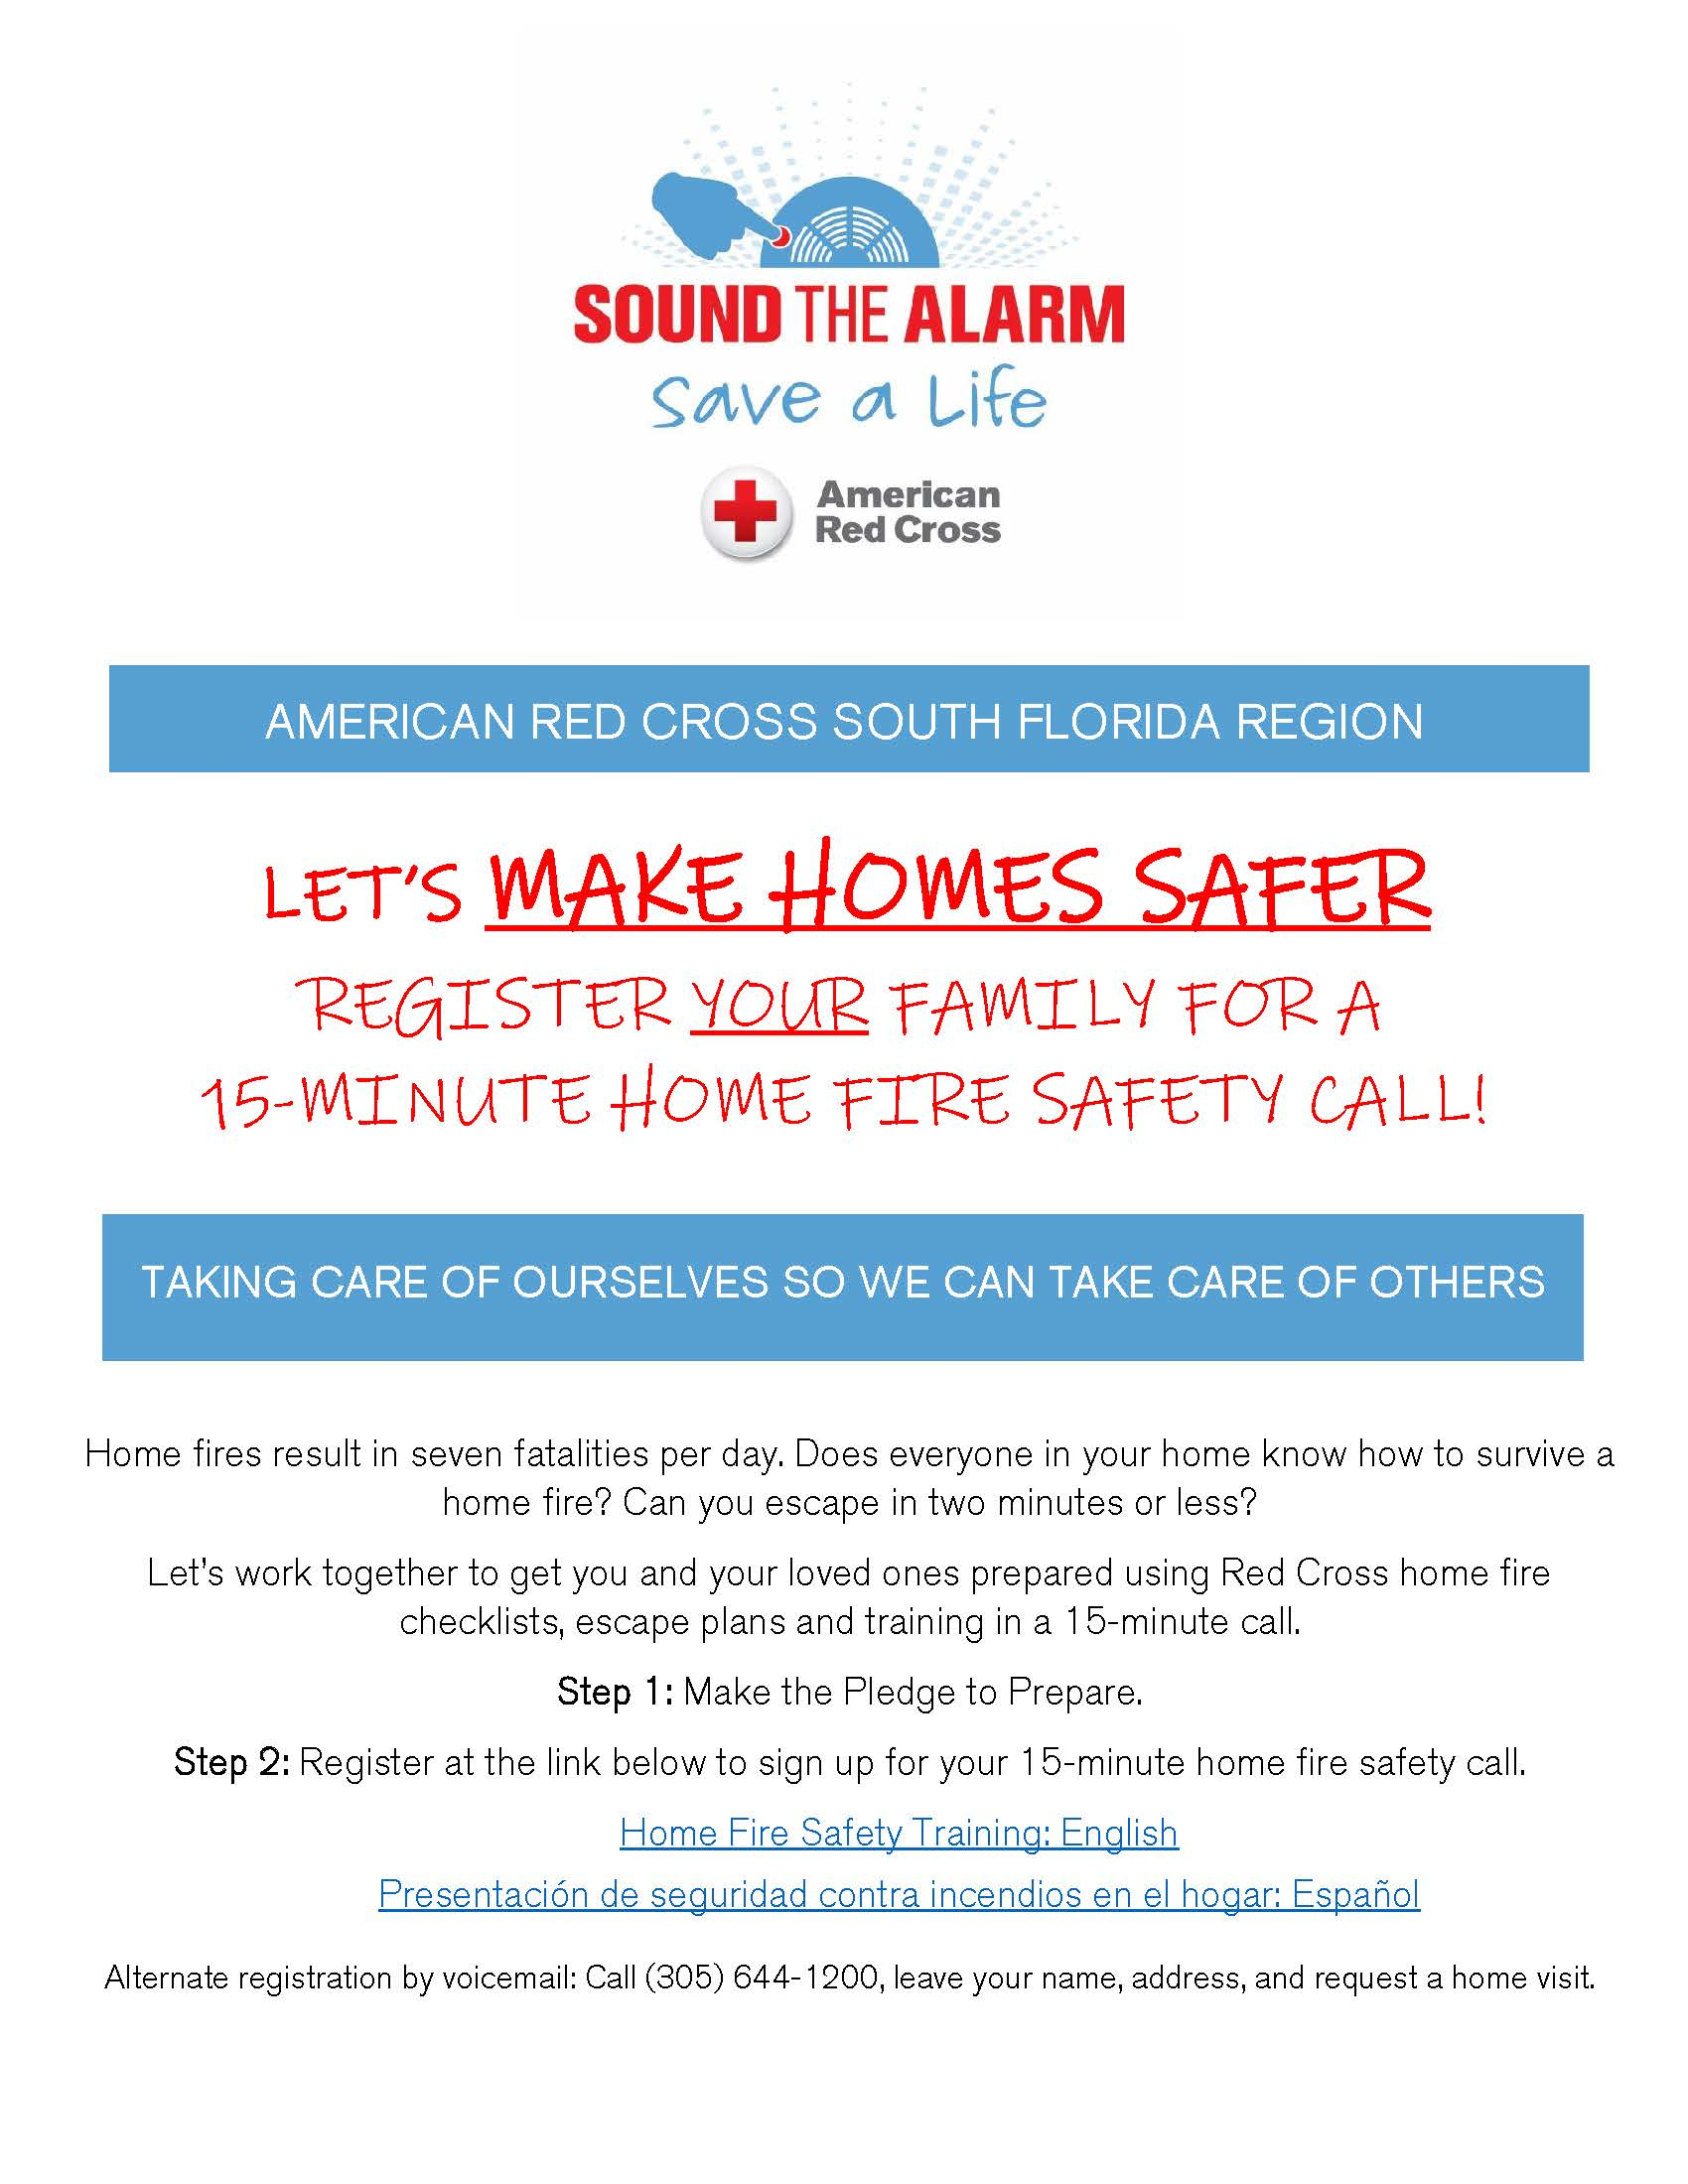 schedule a virtual call for home fire safety tips with the American Red Cross